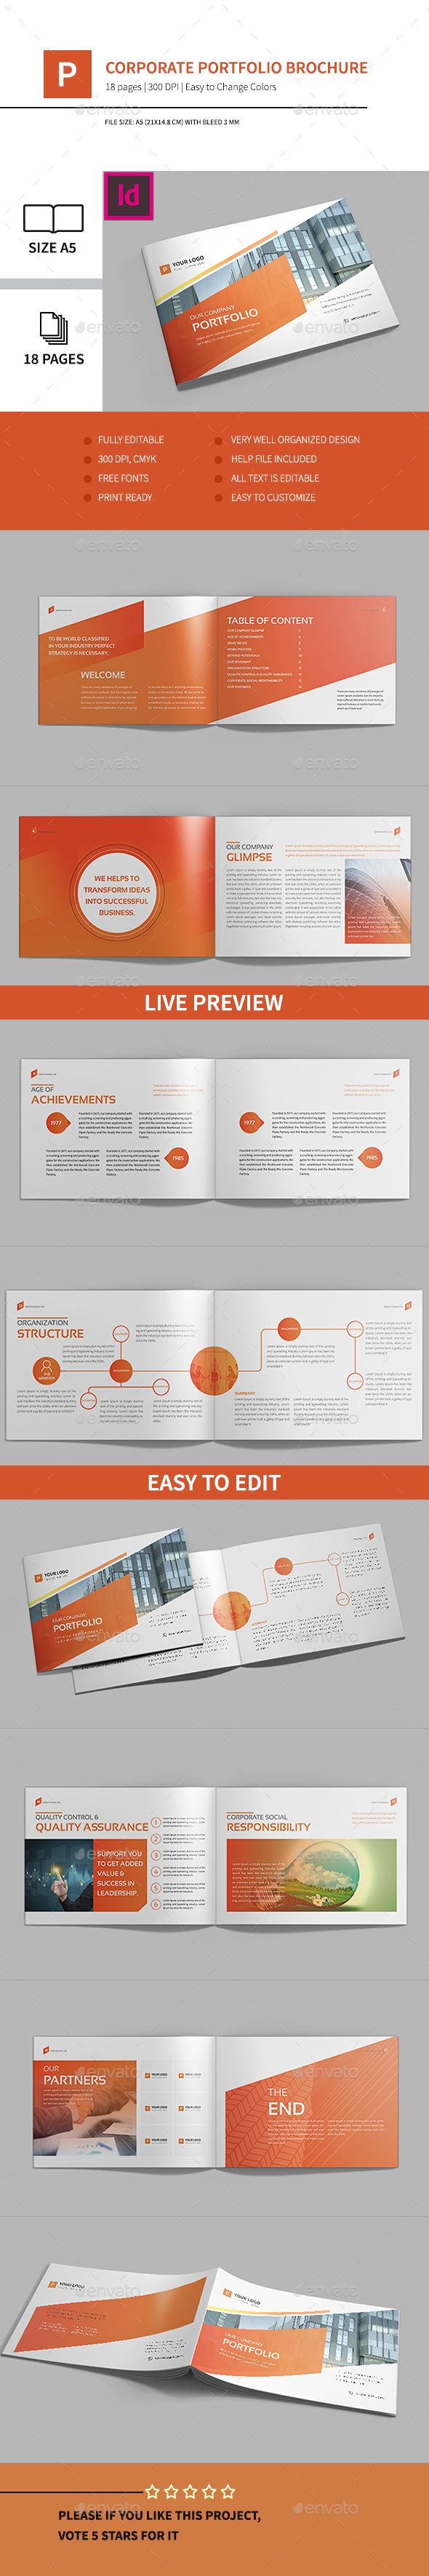 Corporate portfolio brochure 18pages a5 horizontal for Horizontal brochure template